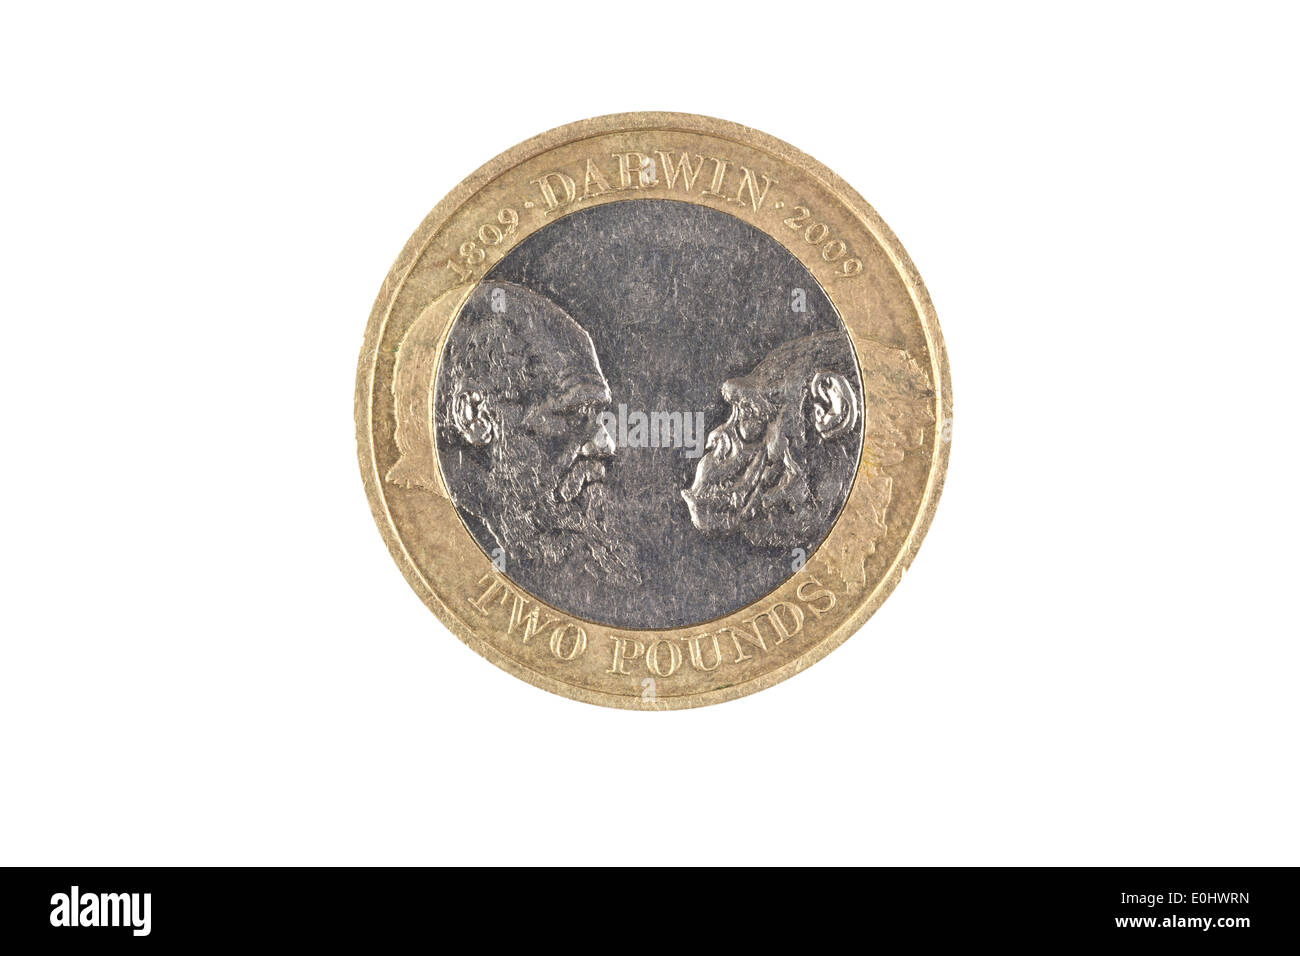 A special edition two pound coin marking the bicentenary of Charles Darwin's birth - Stock Image